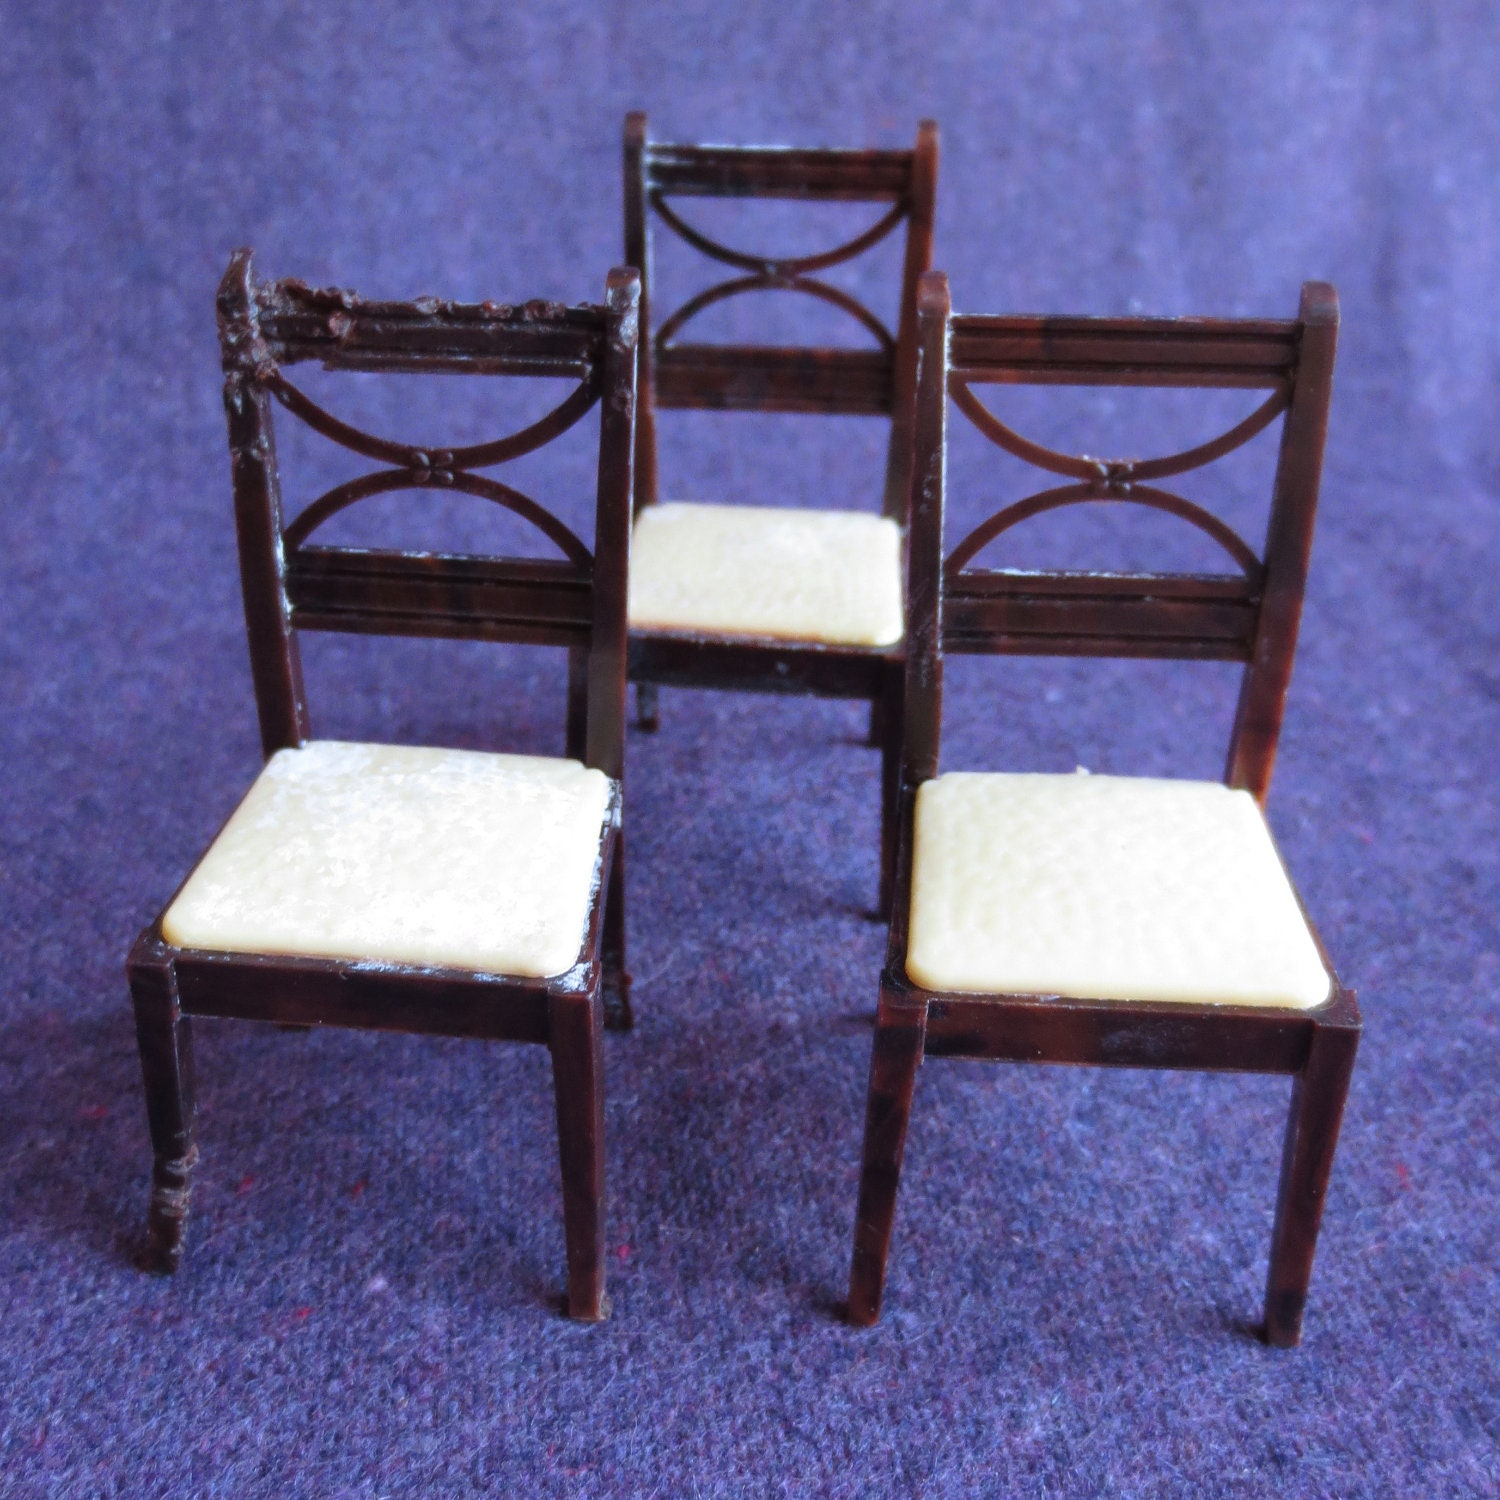 Dining room chairs dollhouse furniture by jeniyesterday on etsy - Dollhouse dining room furniture ...